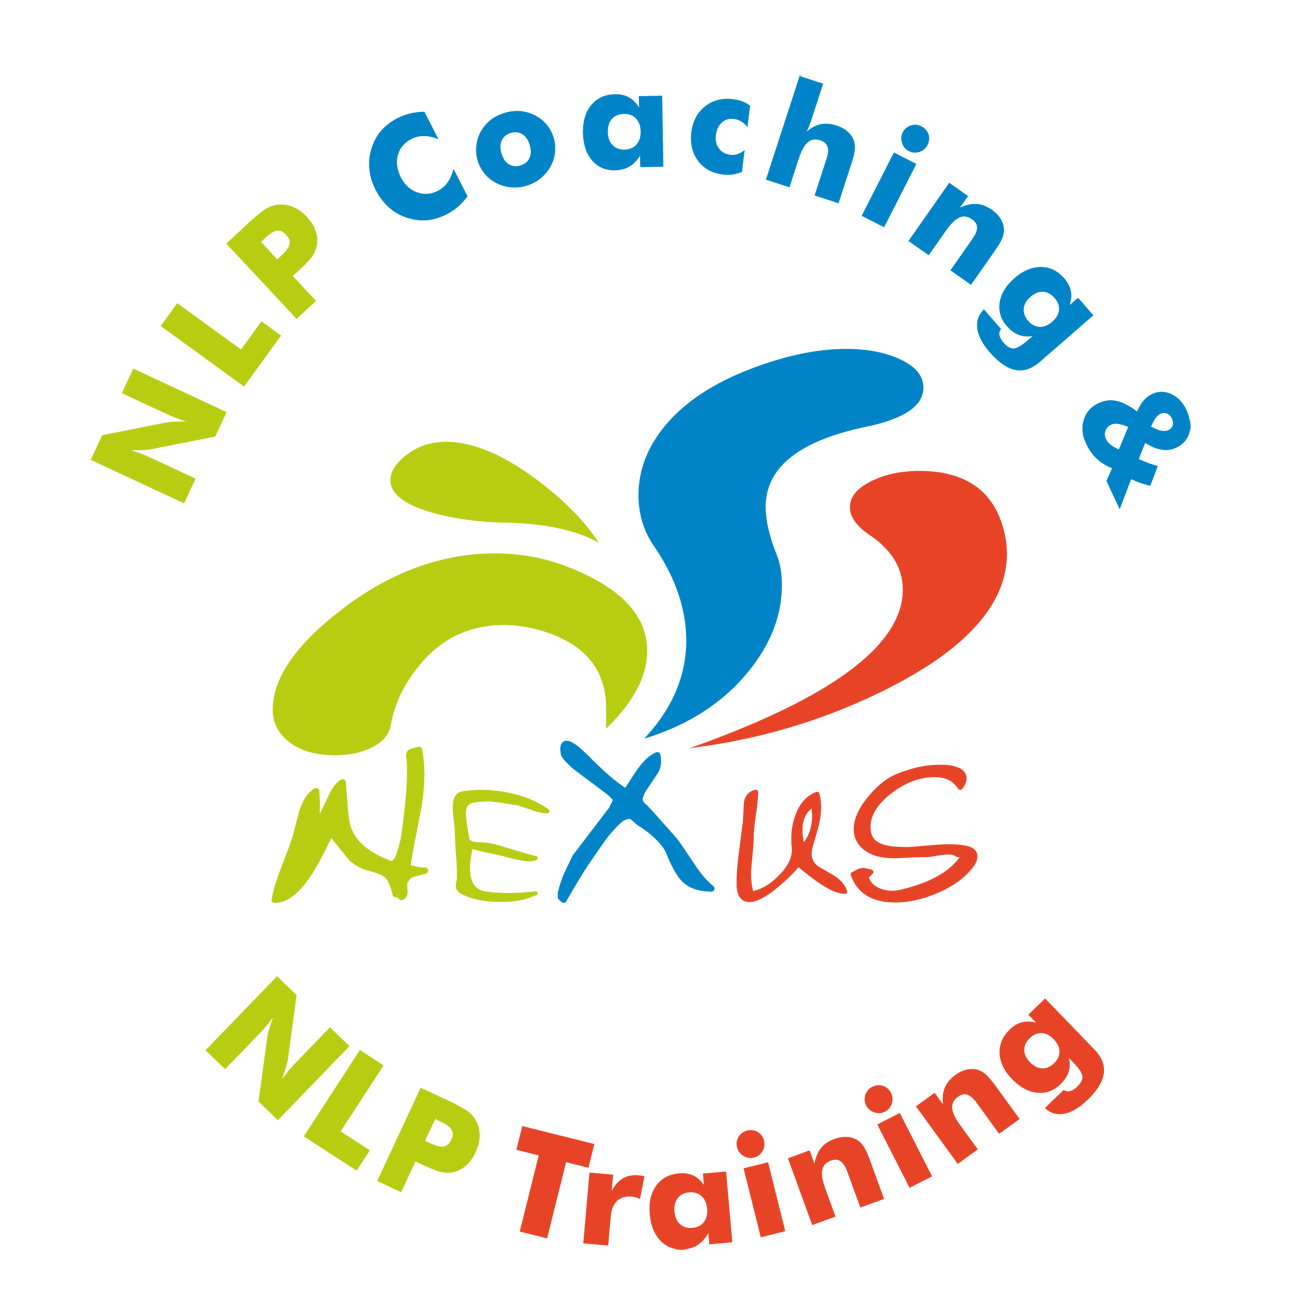 Coaching Mayen Koblenz schnelle Lösungen mit NLP-Coaching Selbstbewusstseins-Coaching Mayen Koblenz, Selbstvertrauens-Coaching, Selbstsicherheits-Coaching, Selbstwert-Coaching